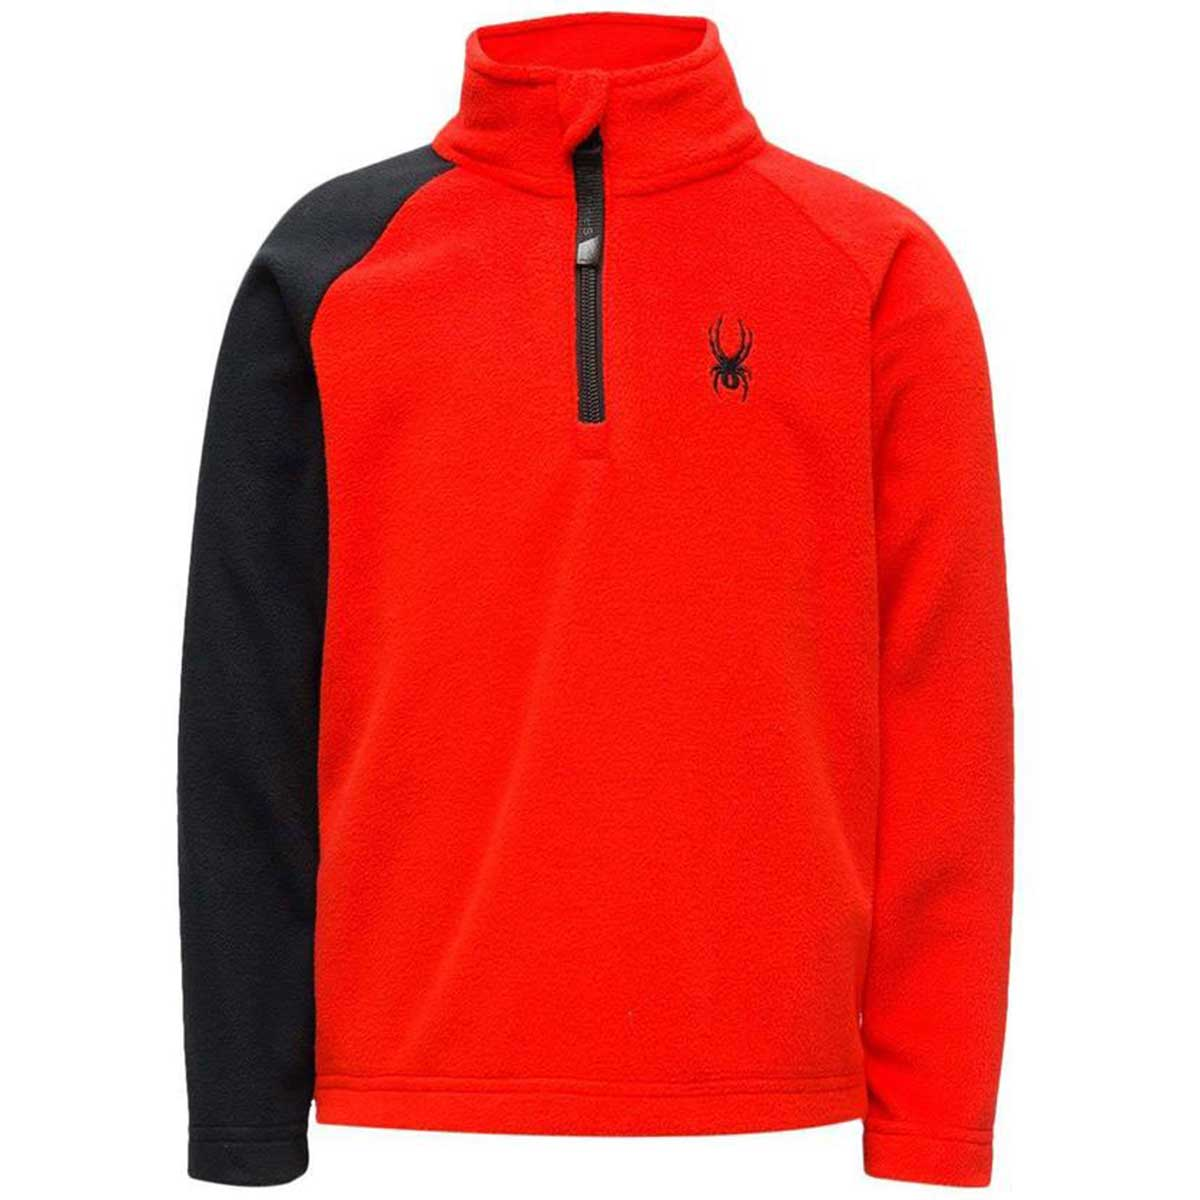 Spyder boys' Mini Speed Fleece Top in Volcano front view